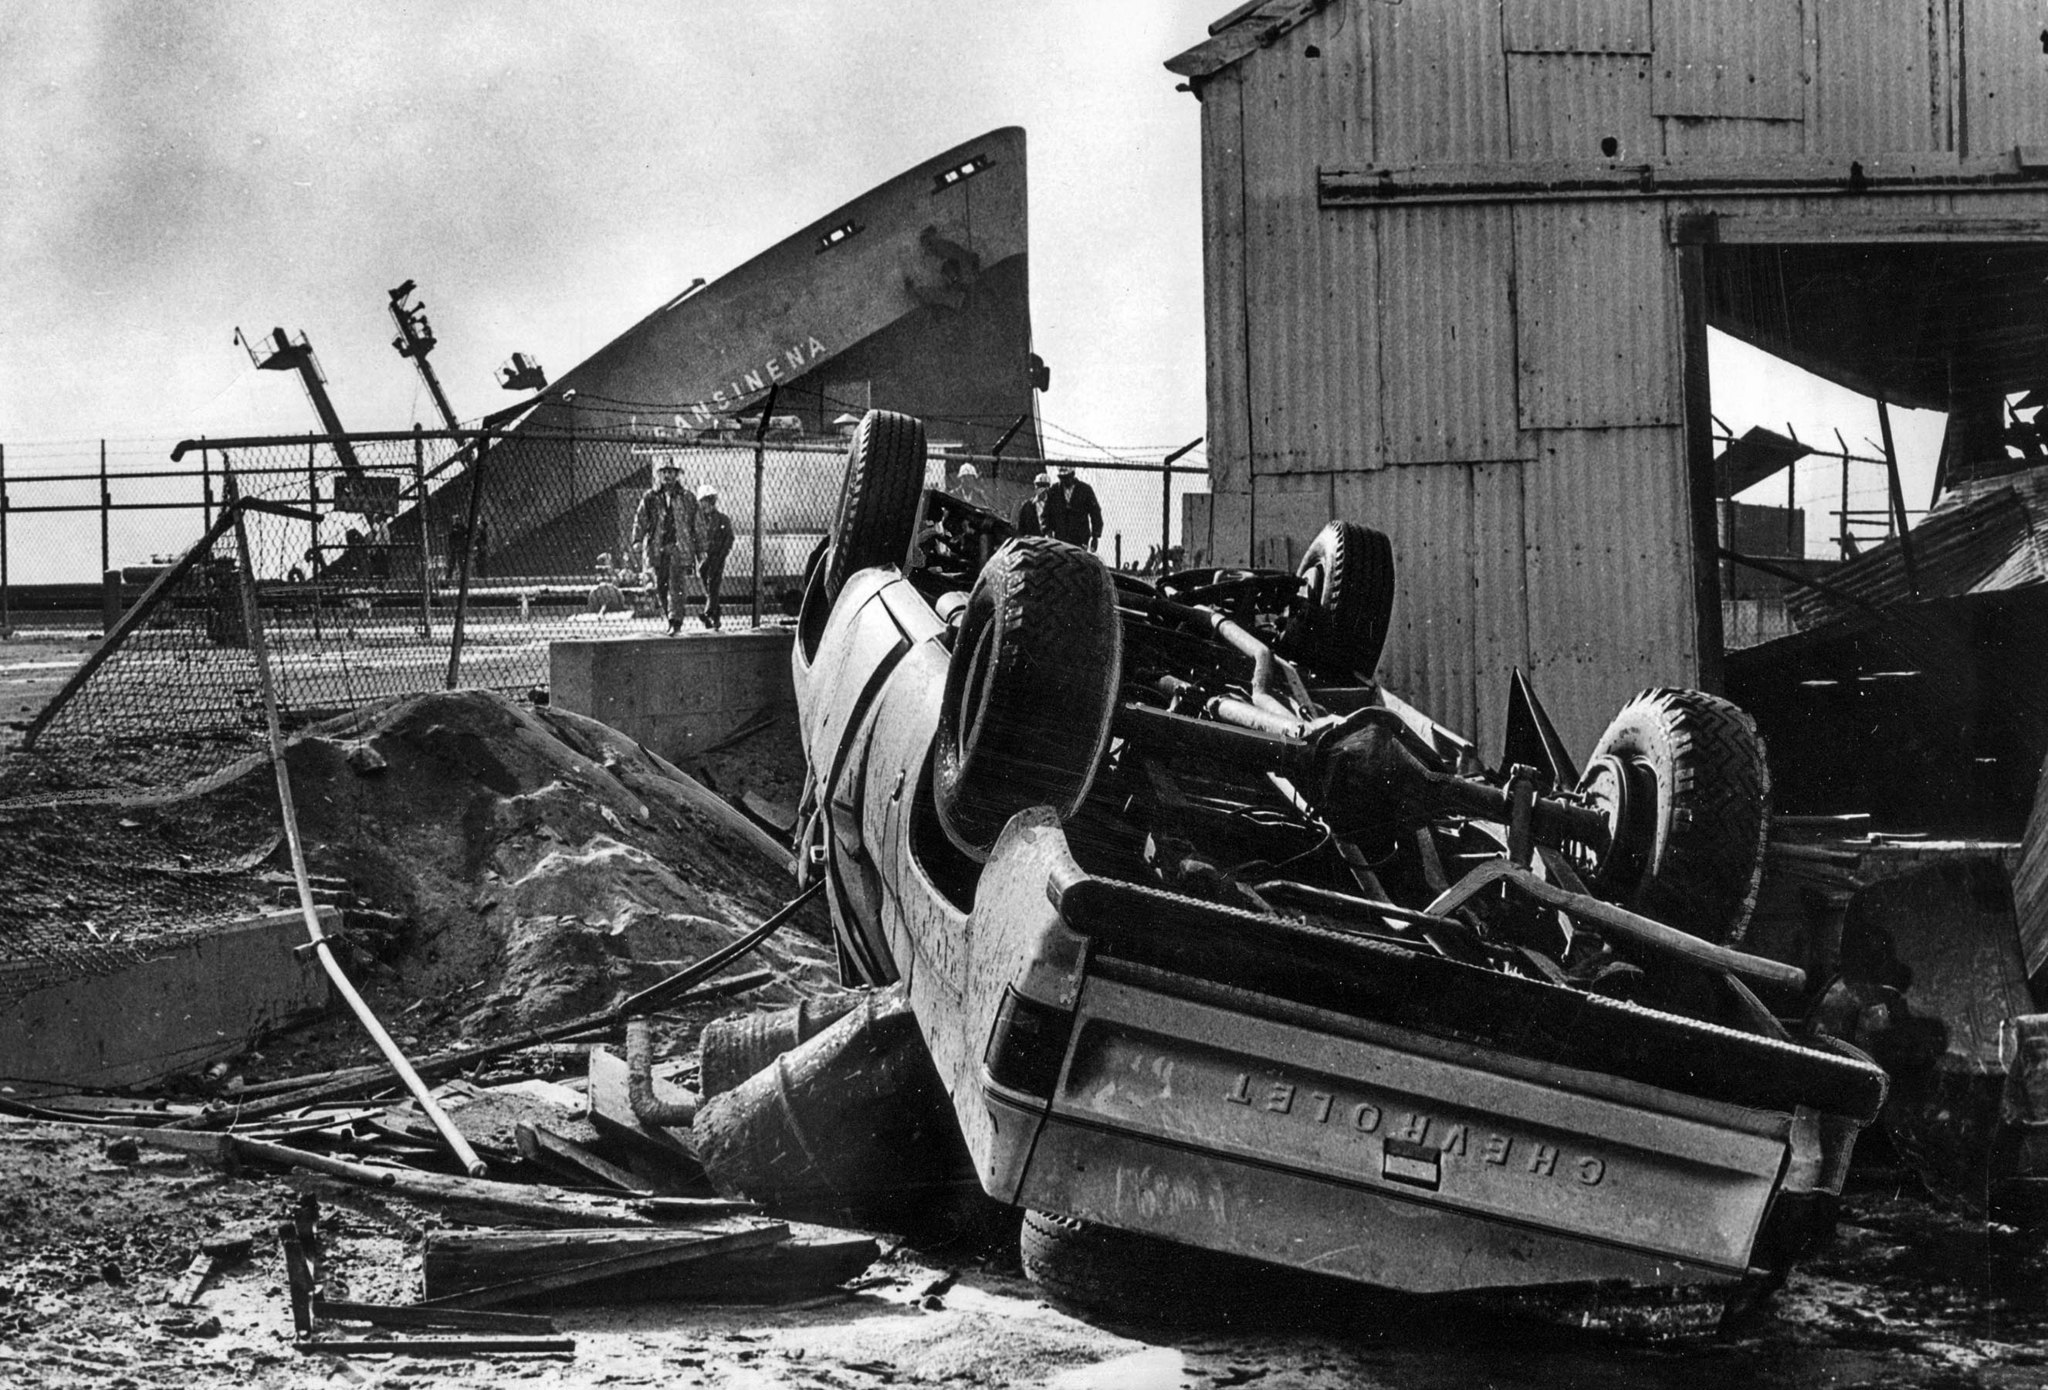 Dec. 18, 1976: An overturned truck sits overturned by the explosion of the tanker Sansinena, whose b